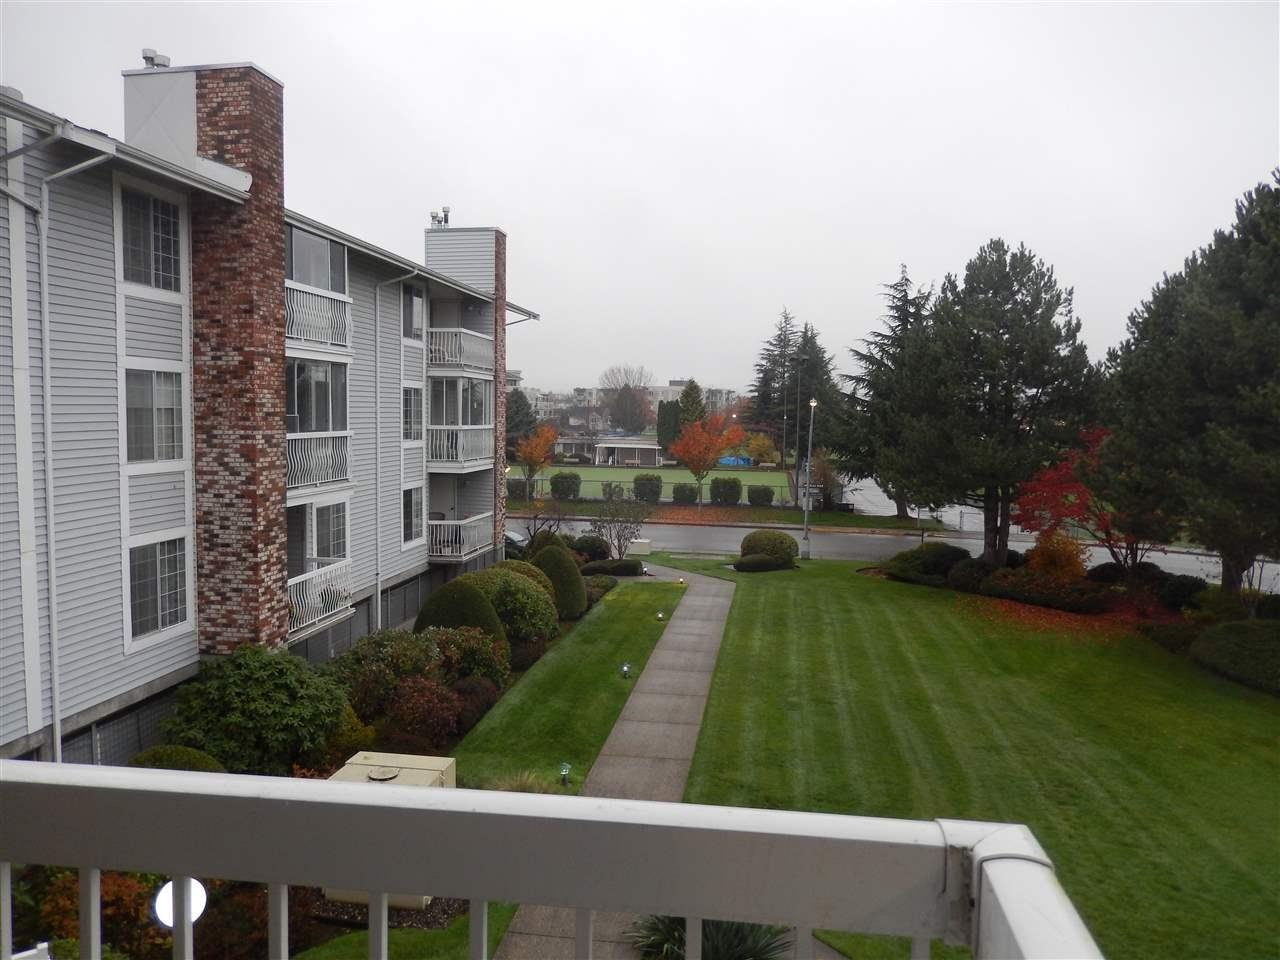 R2013875 - 226 5379 205 STREET, Langley City, Langley, BC - Apartment Unit